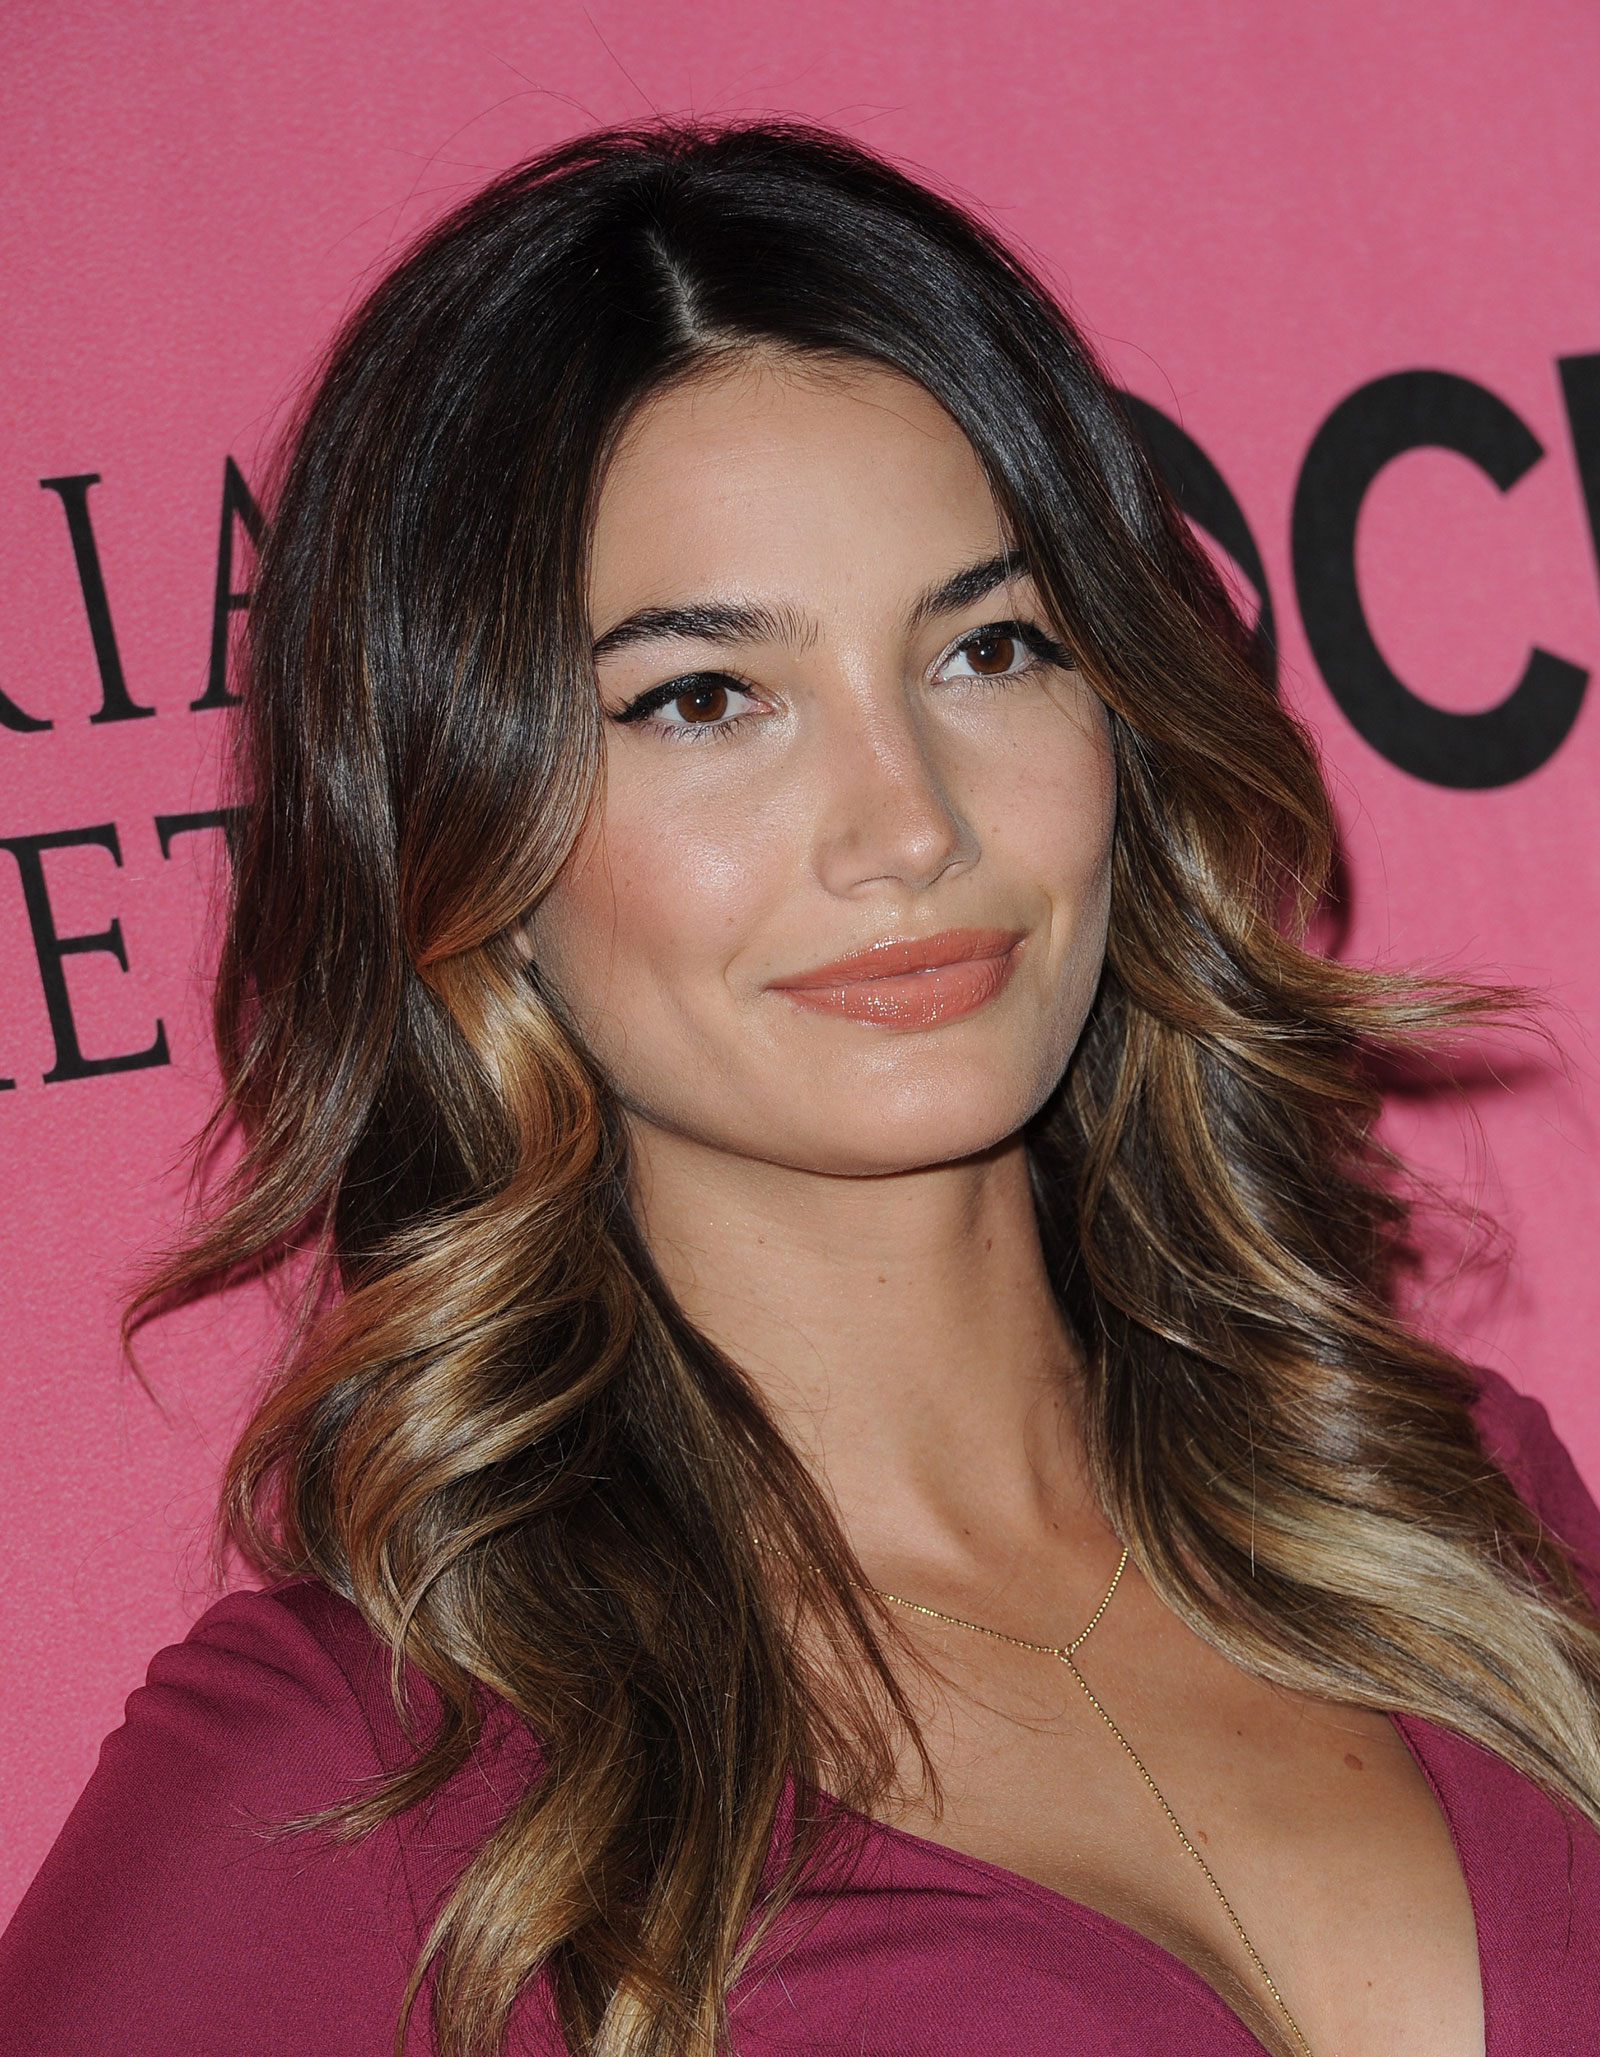 Lily Aldridge Net Worth